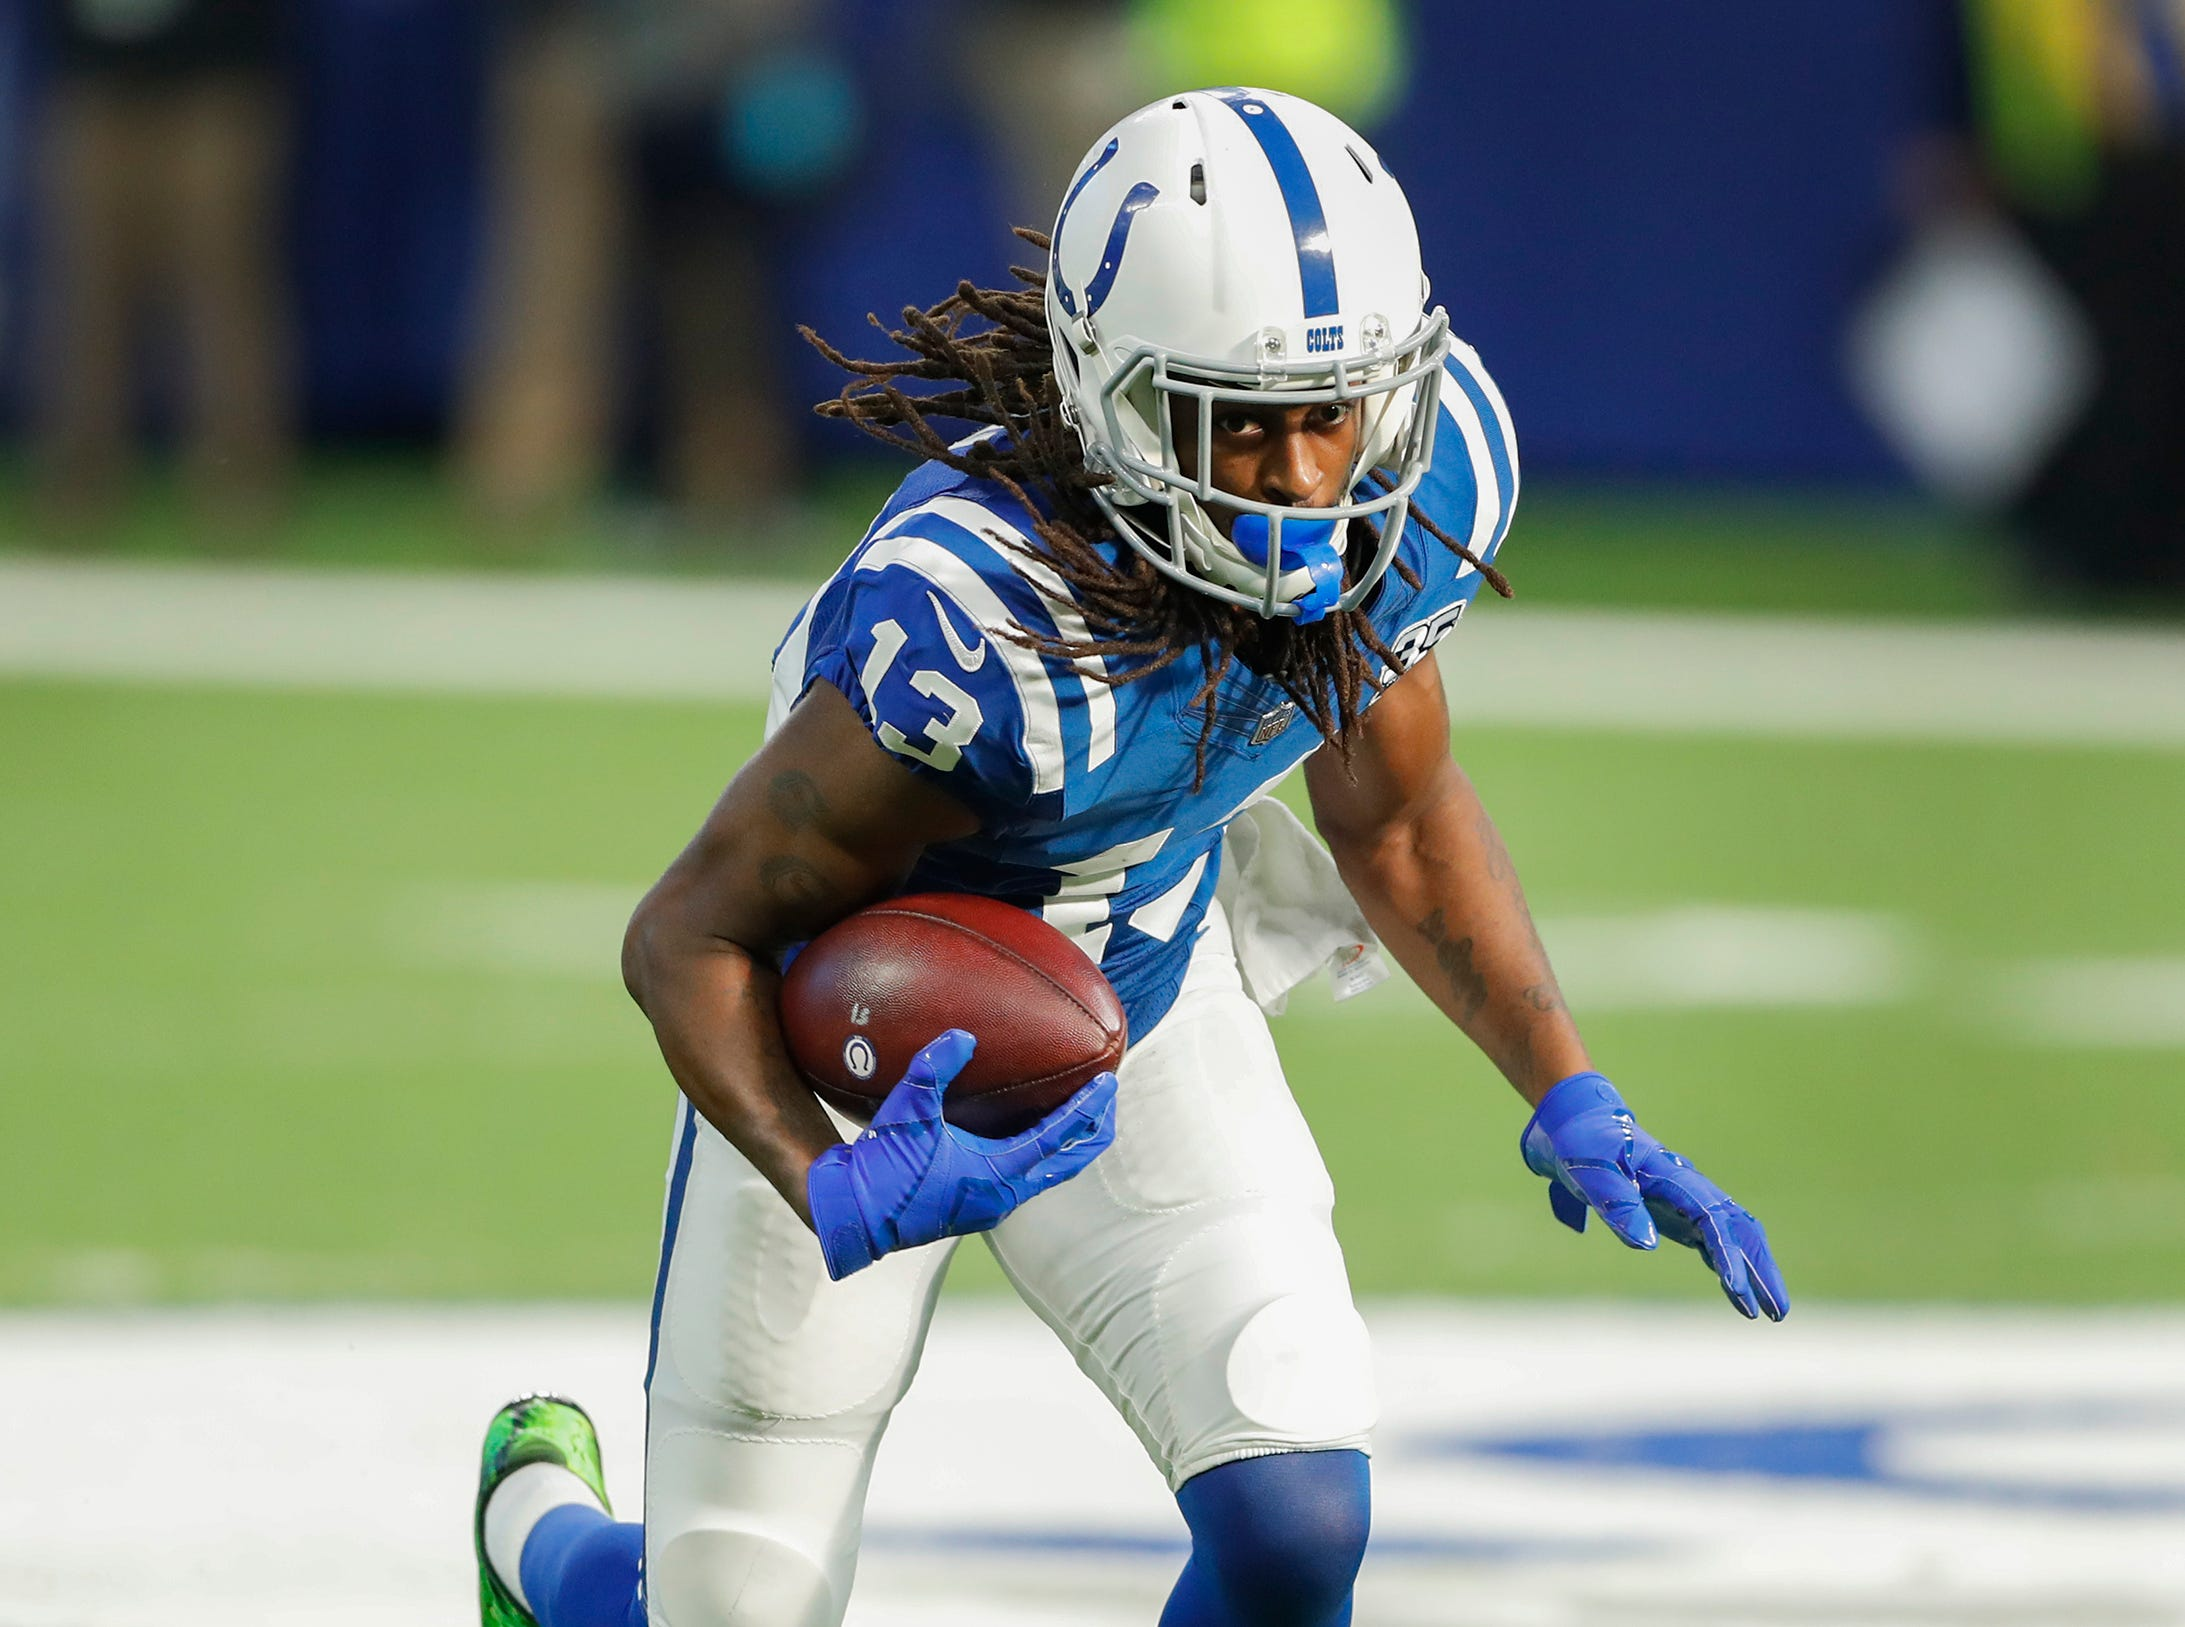 Indianapolis Colts wide receiver T.Y. Hilton (13) turns upfield after a catch in the first half of their game at Lucas Oil Stadium on Sunday, Dec. 16, 2018.